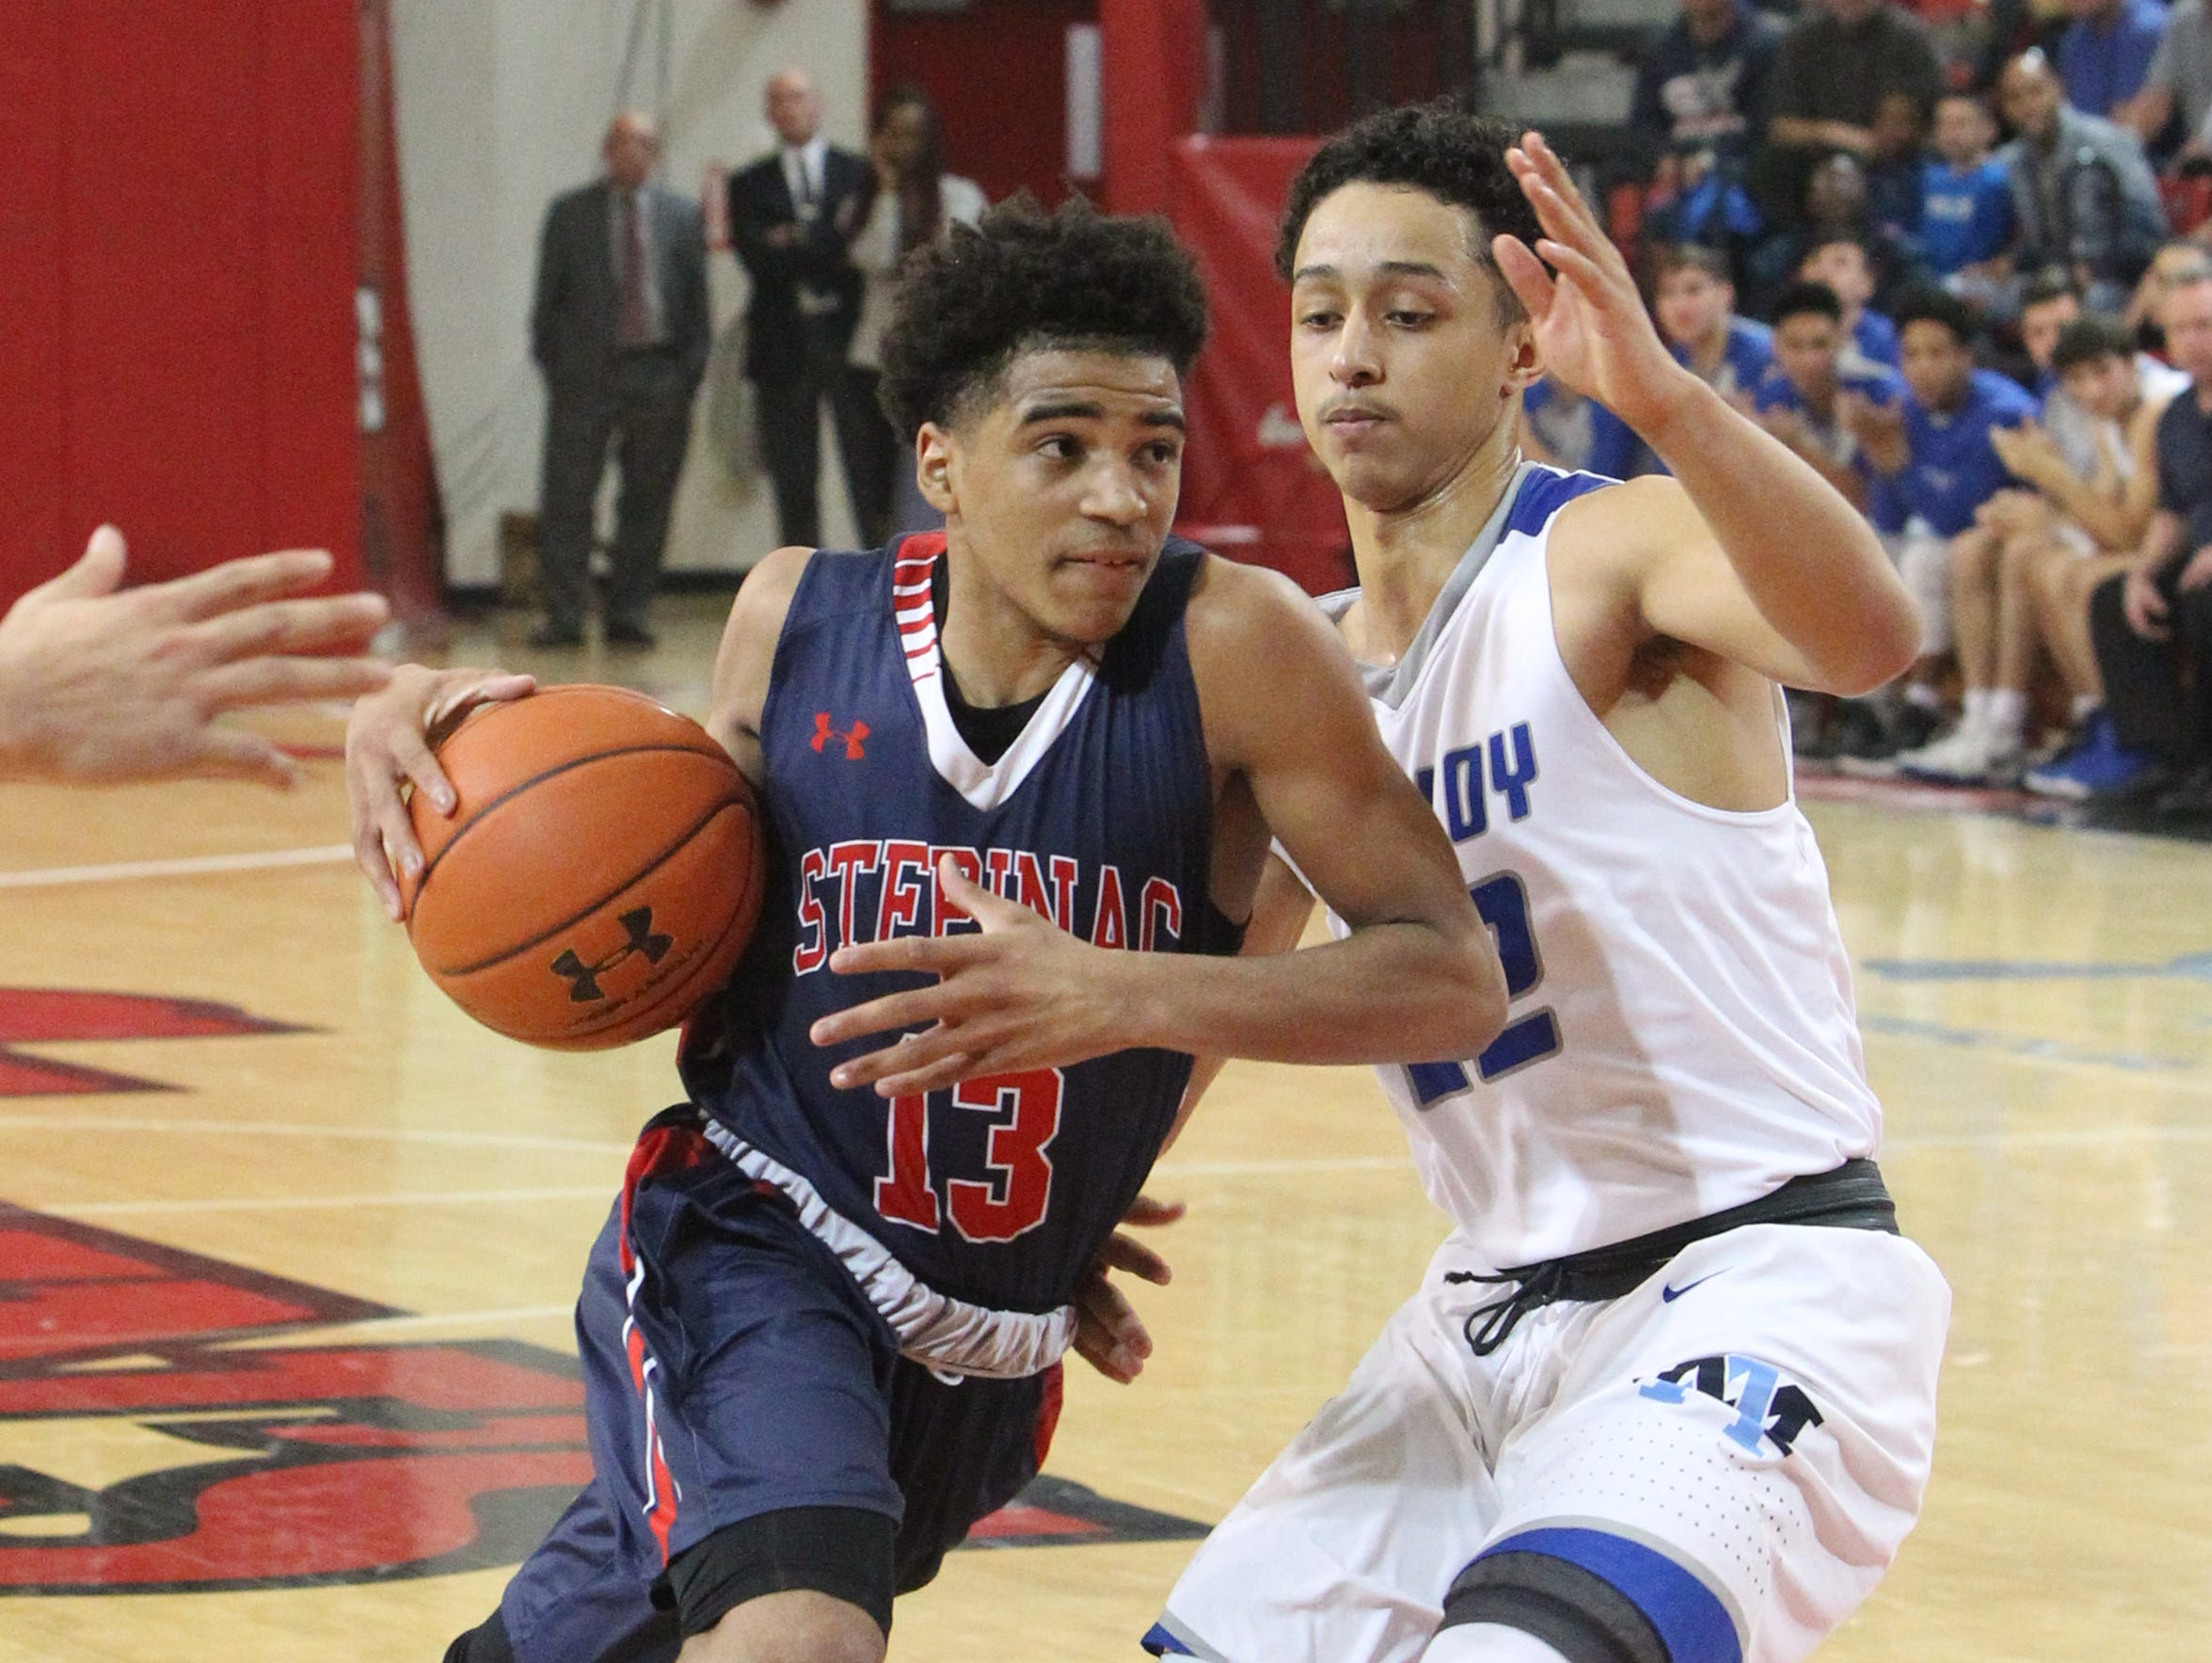 Stepinac lost to Archbishop Molloy 70-69 in a CHSAA